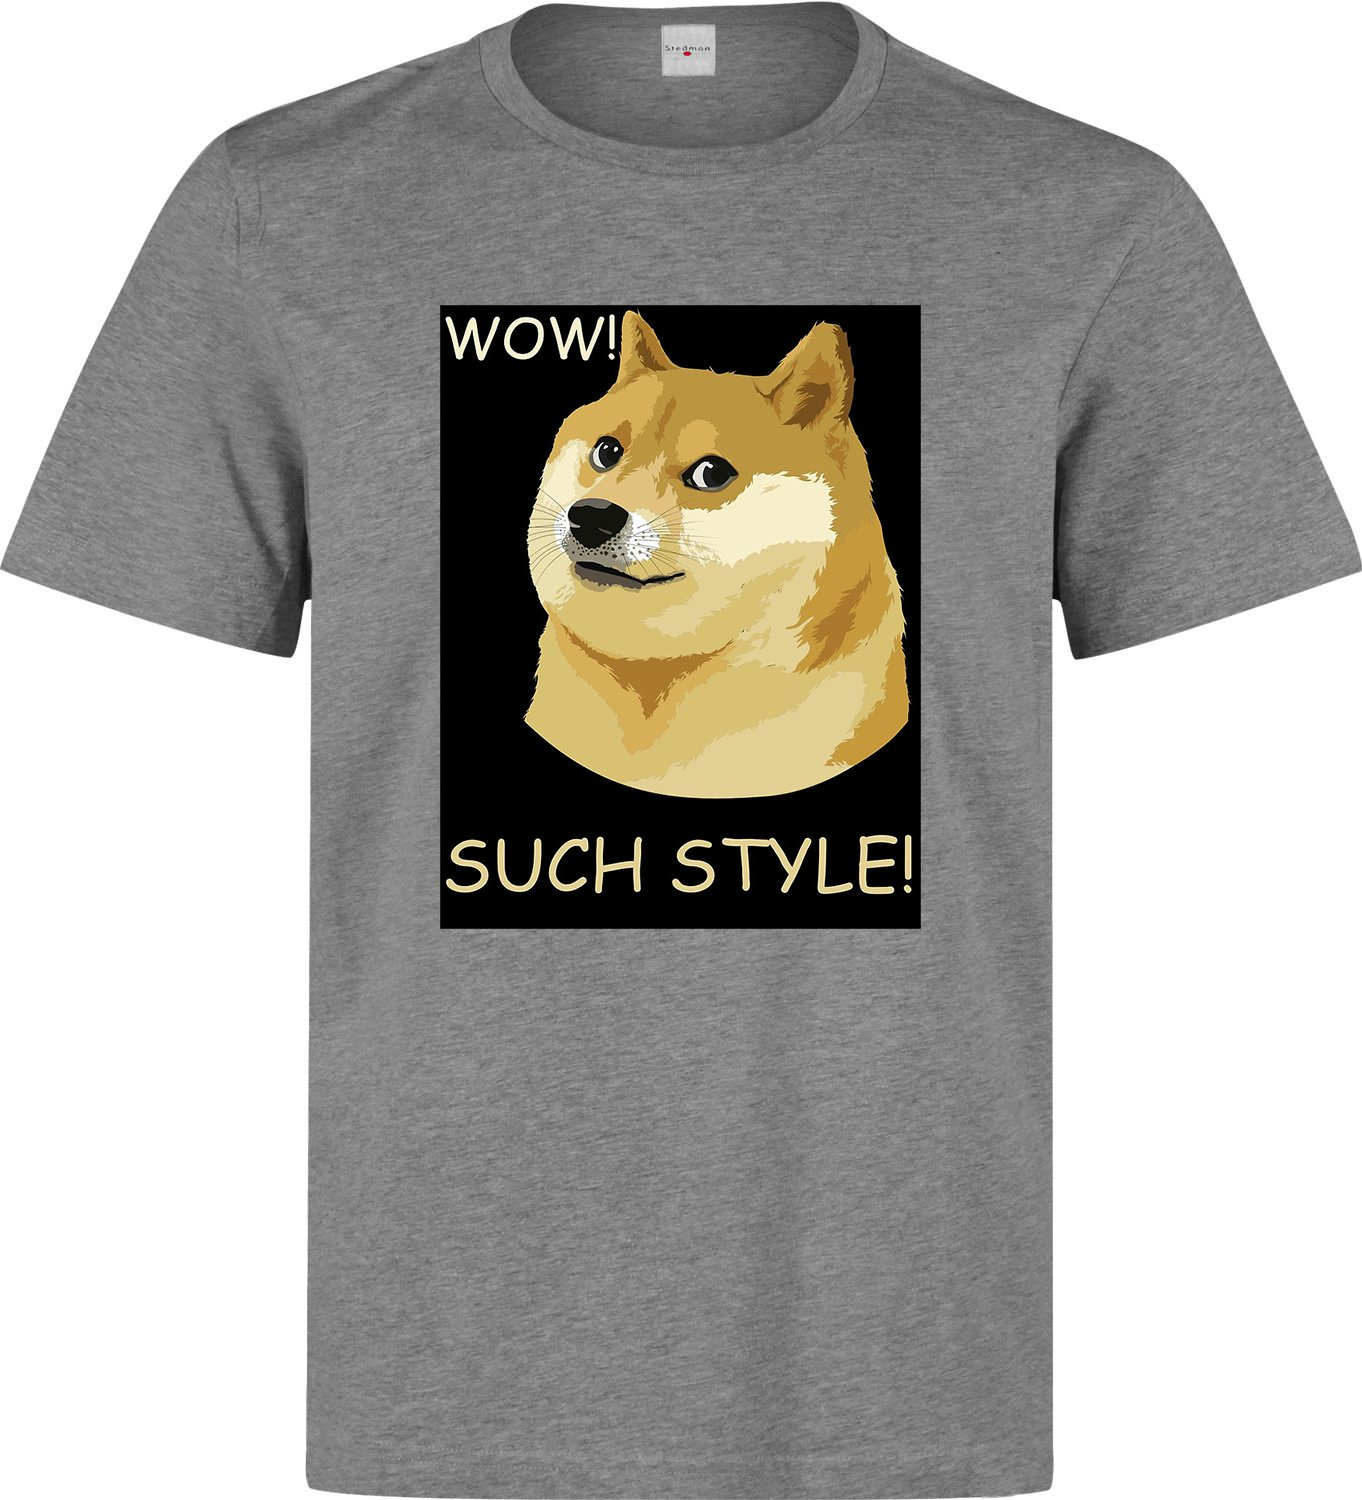 Doge meme funny men printed cotton gray t-shirt size L